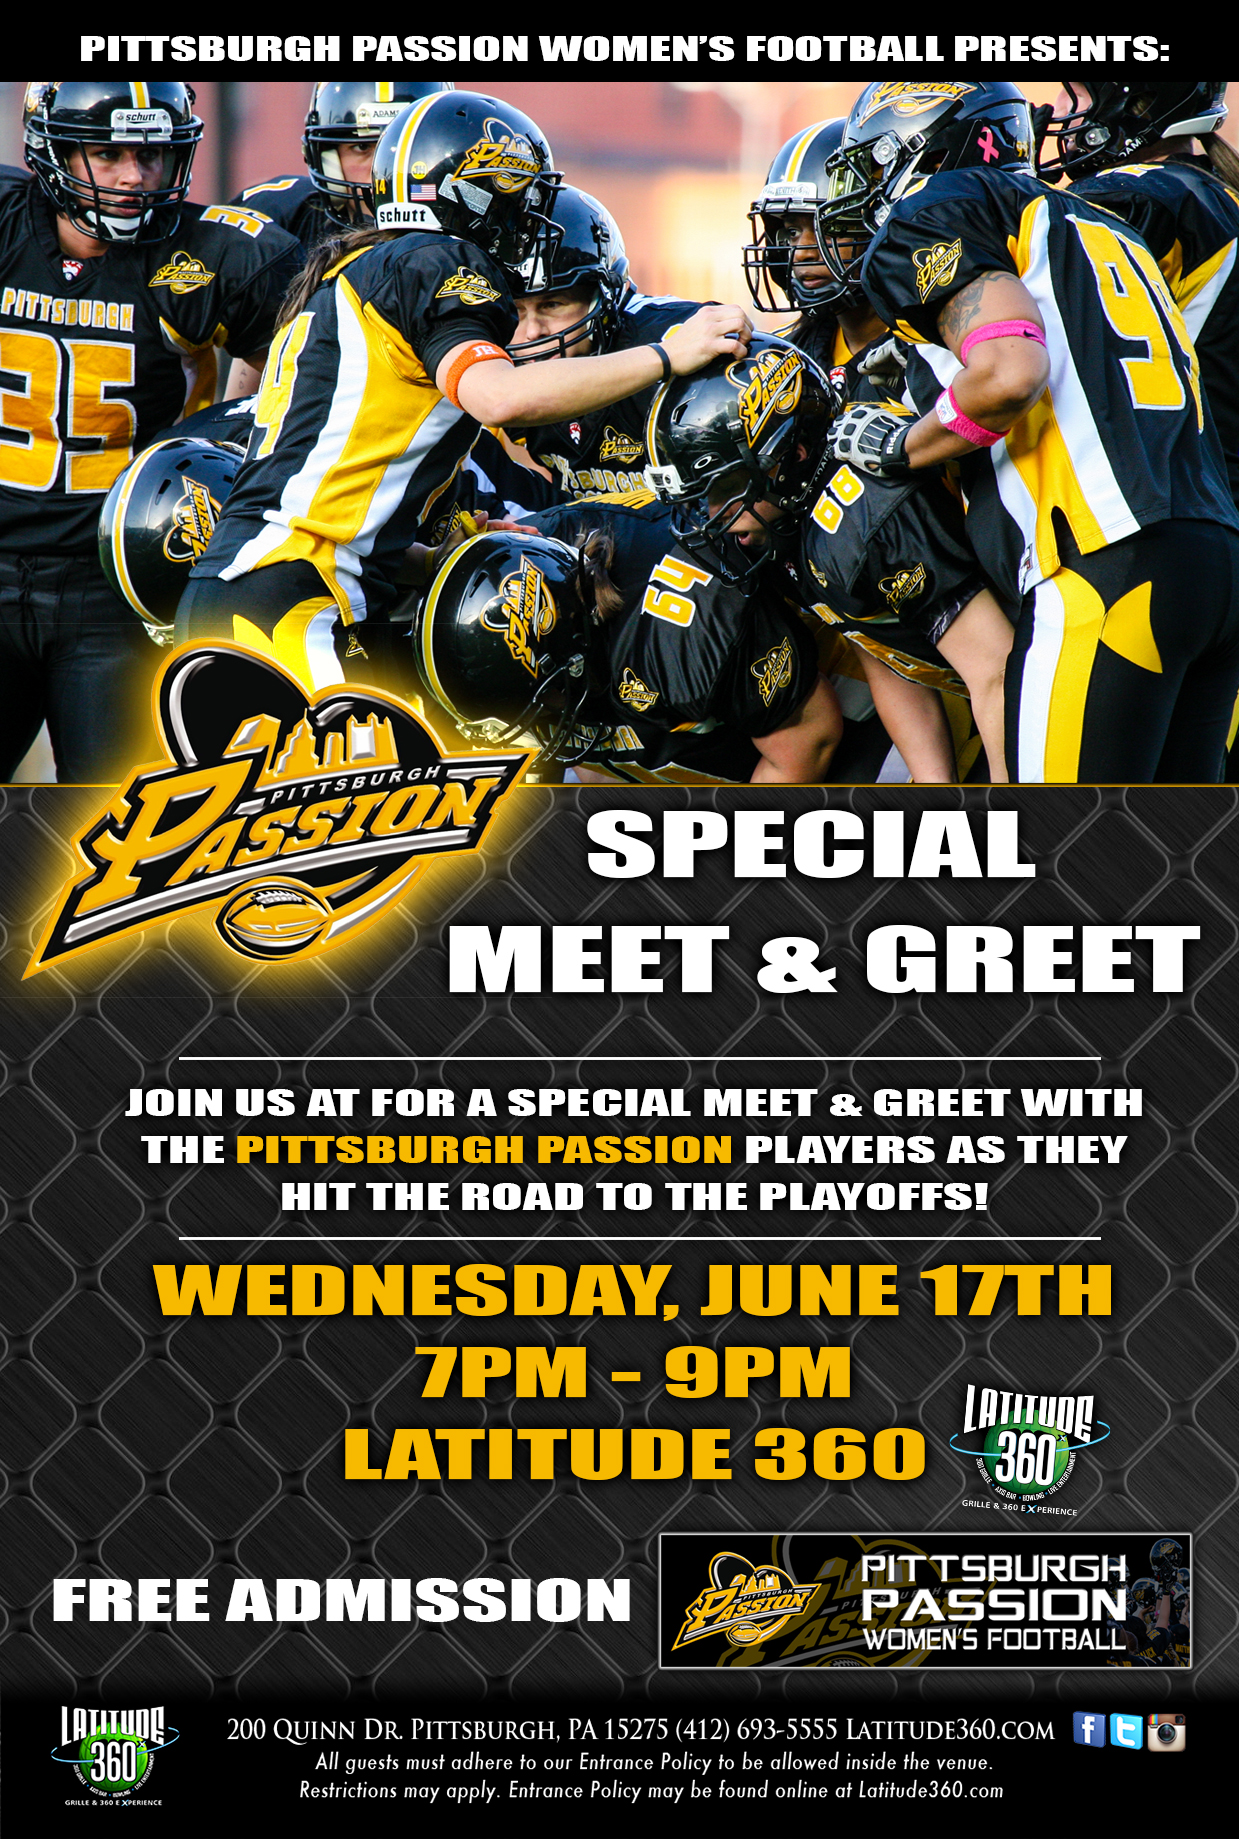 L360 pitt pittsburgh passion meet and greet flyer pittsburgh l360 pitt pittsburgh passion meet and greet flyer m4hsunfo